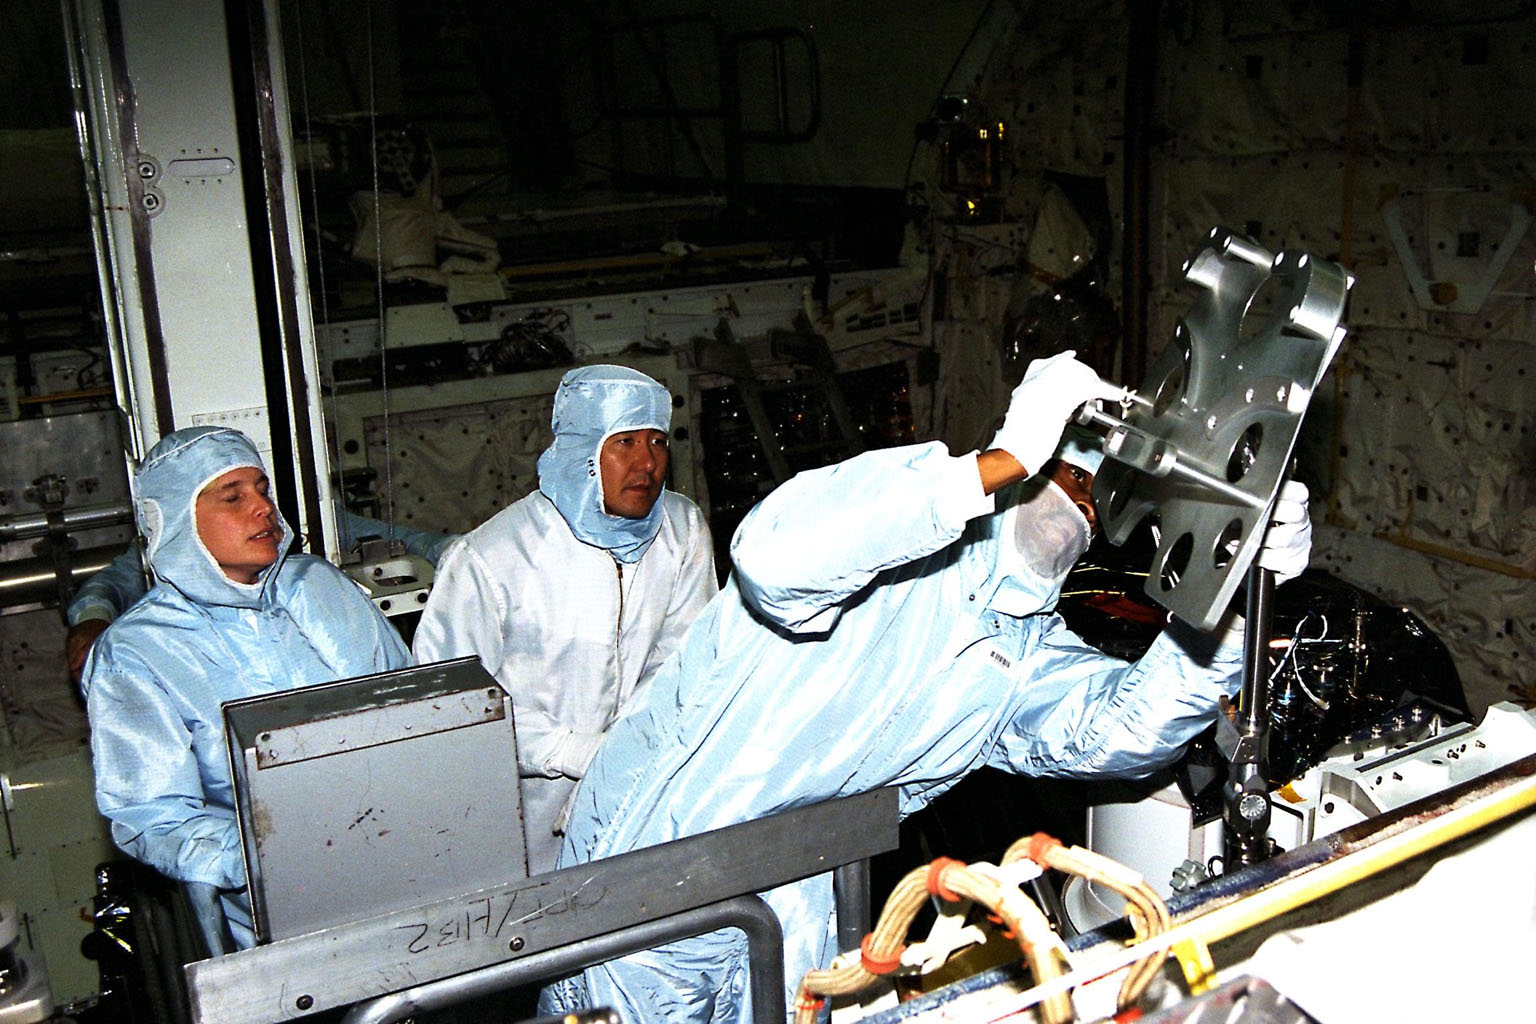 Participating in the Crew Equipment Integration Test (CEIT) at Kennedy Space Center are STS-87 crew members, assisted by Glenda Laws, extravehicular activity (EVA) coordinator, Johnson Space Center, at left. Next to Laws is Mission Specialist Takao Doi, Ph.D., of the National Space Development Agency of Japan, who is looking on as Mission Specialist Winston Scott gets a hands-on look at some of the equipment. The STS-87 mission will be the fourth United States Microgravity Payload and flight of the Spartan-201 deployable satellite. During the mission, scheduled for a Nov. 19 liftoff from KSC, Dr. Doi and Scott will both perform spacewalks